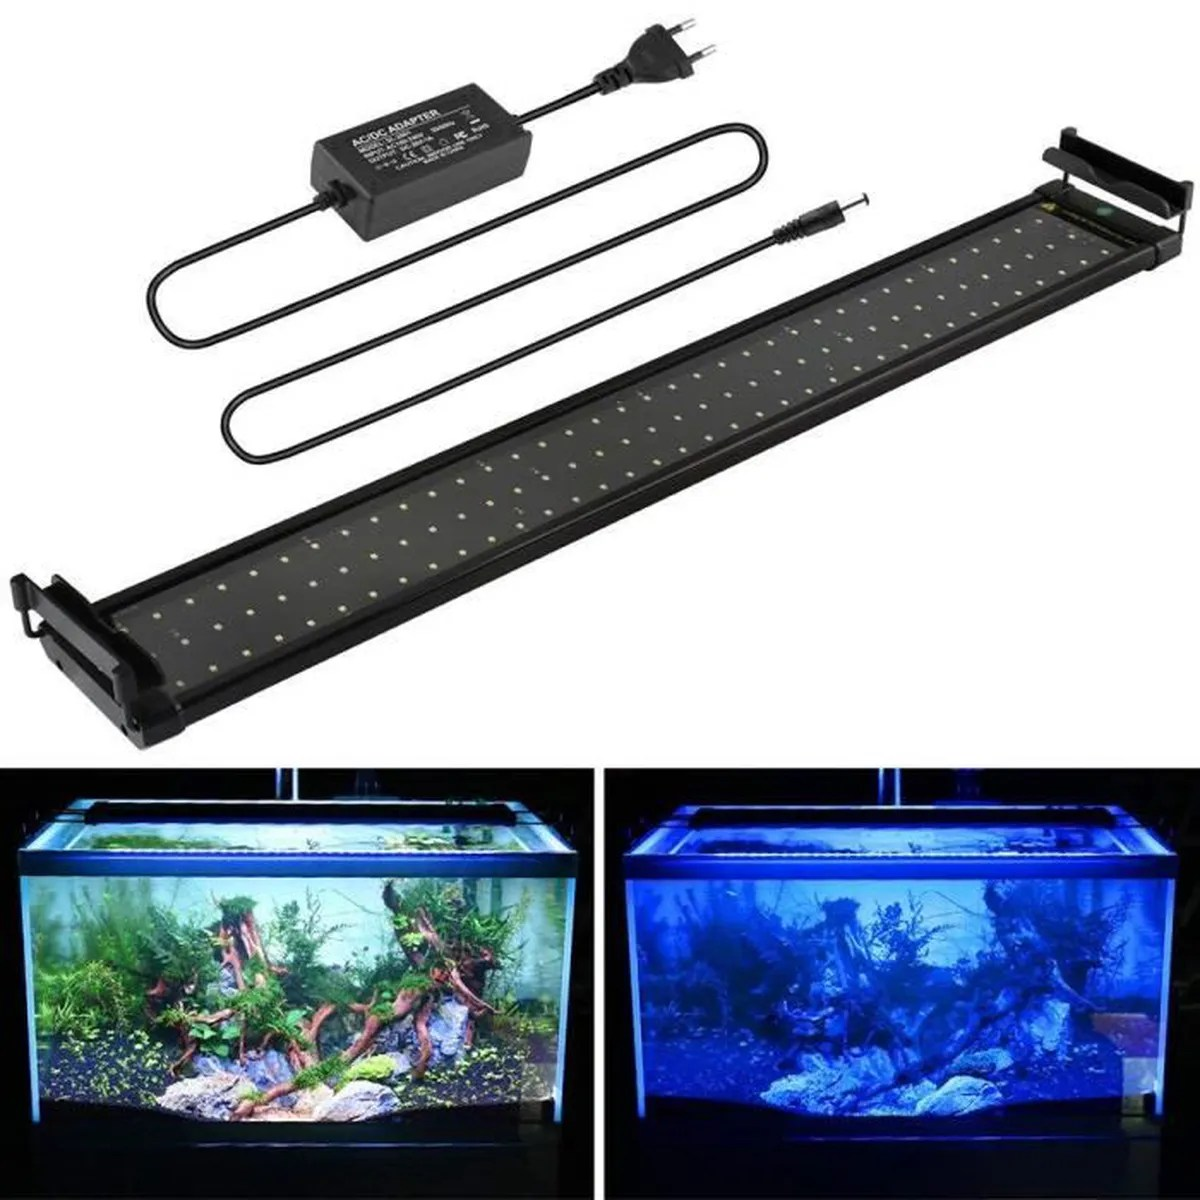 Eclairage Led Dennerle Mainlicht 70 90 Cm éclairage Aquarium Leds 90 Blanc 18 Bleu